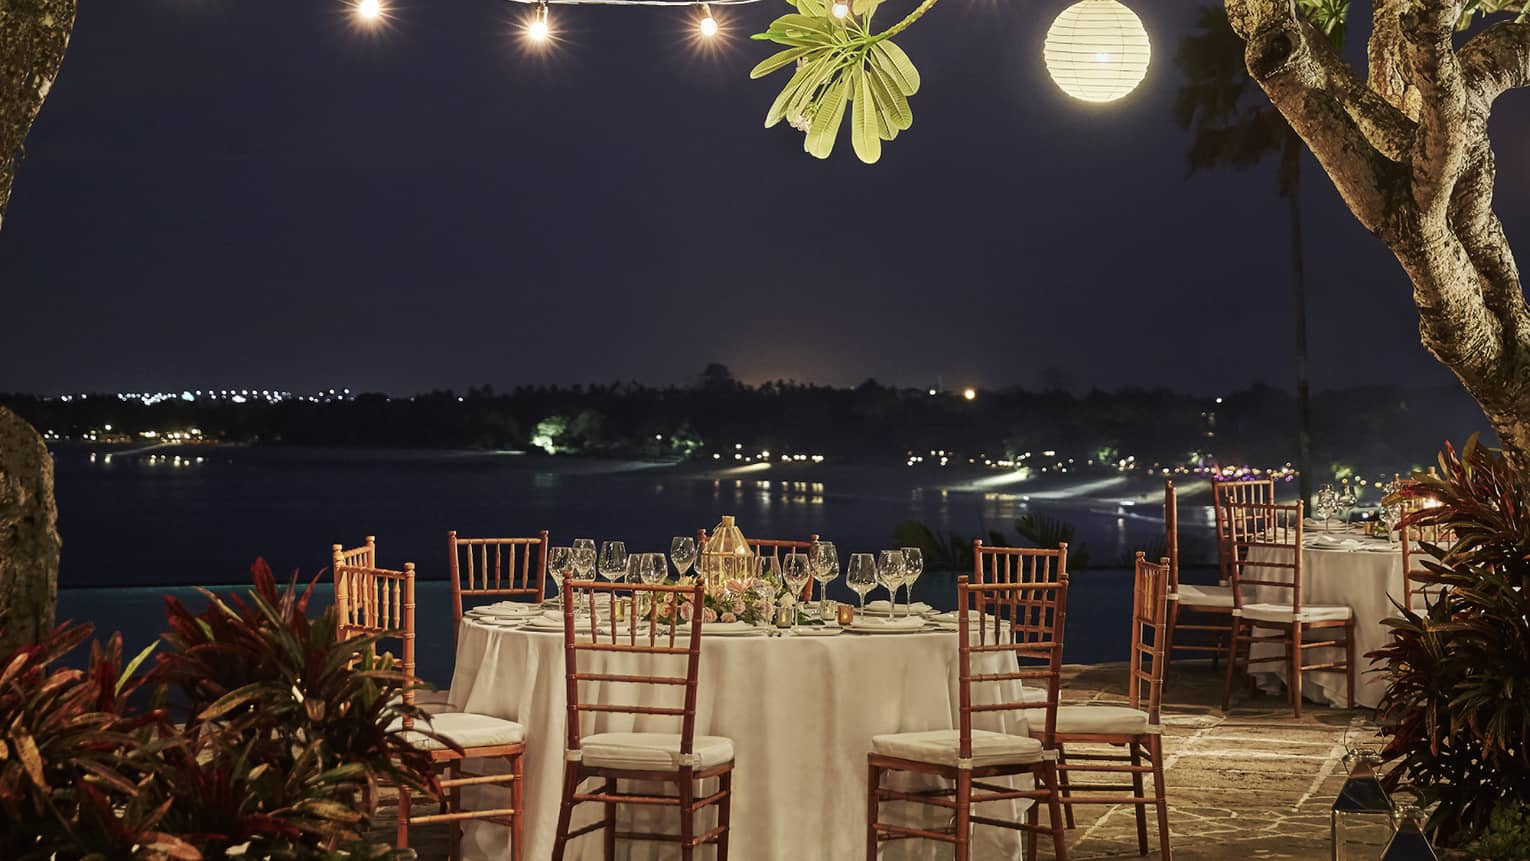 A romantic dinner table set outside under the night sky, with string lights and lanterns hanging in the trees above it